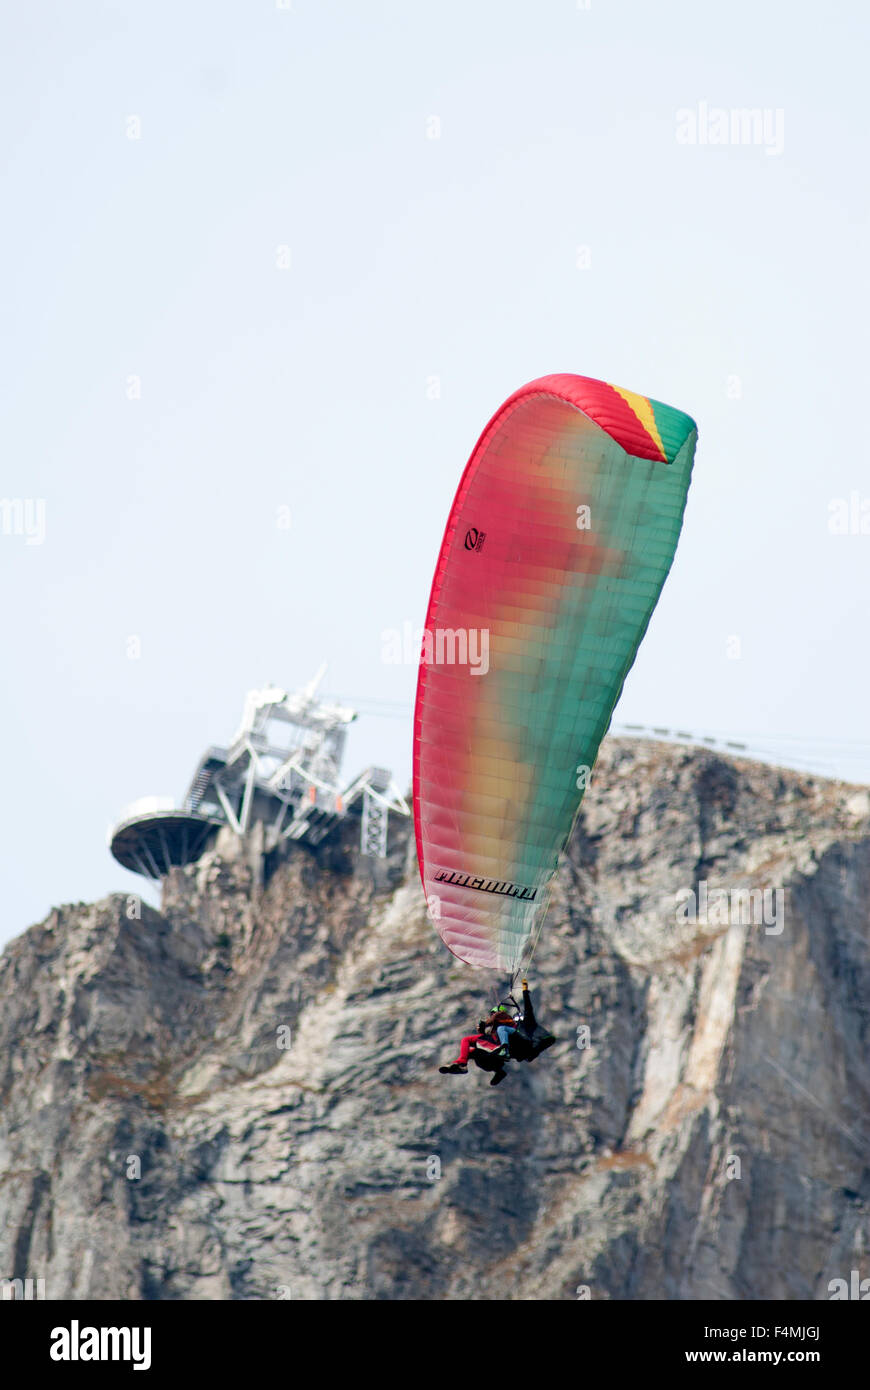 Para glider pilot flying tandem with passenger, gliding in below Le Brevent Cable car - Stock Image